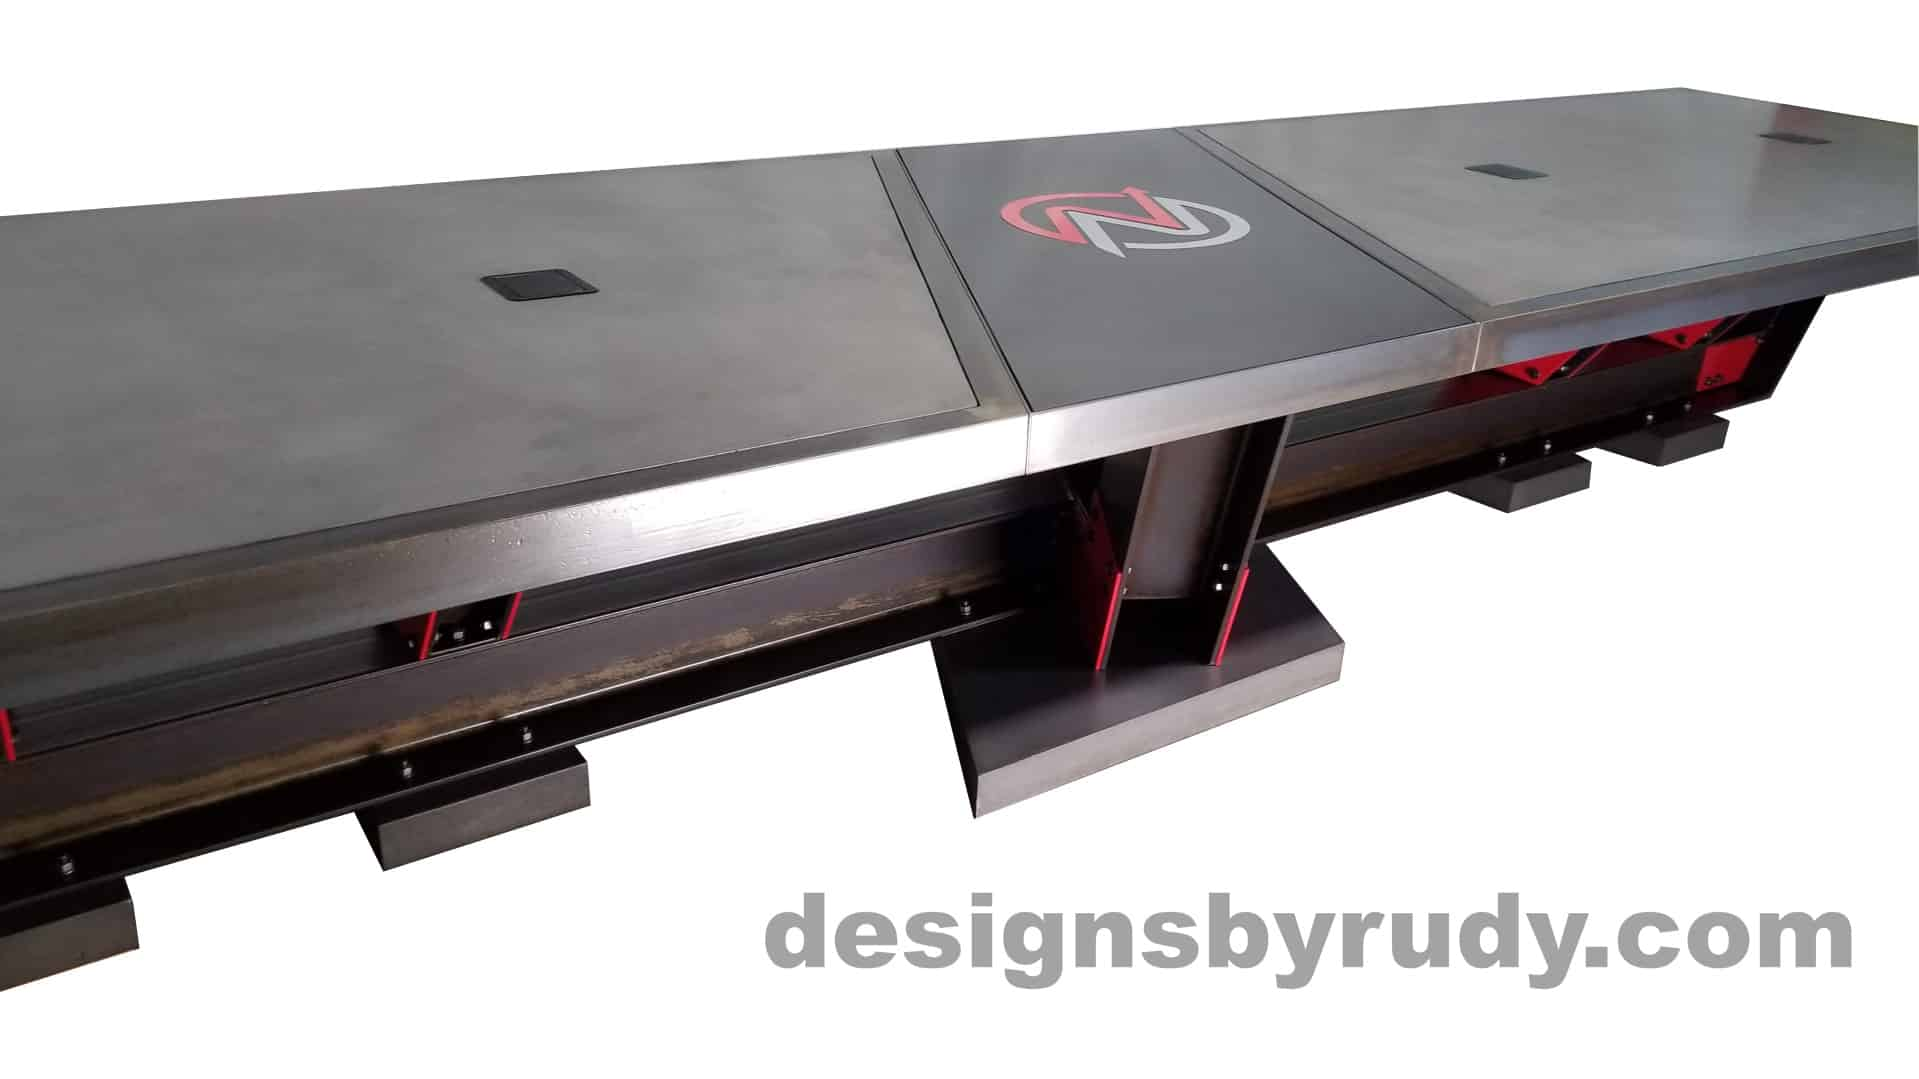 4 Steel and concrete conference table, design and fabrication by Designs by Rudy, front angle center closeup view